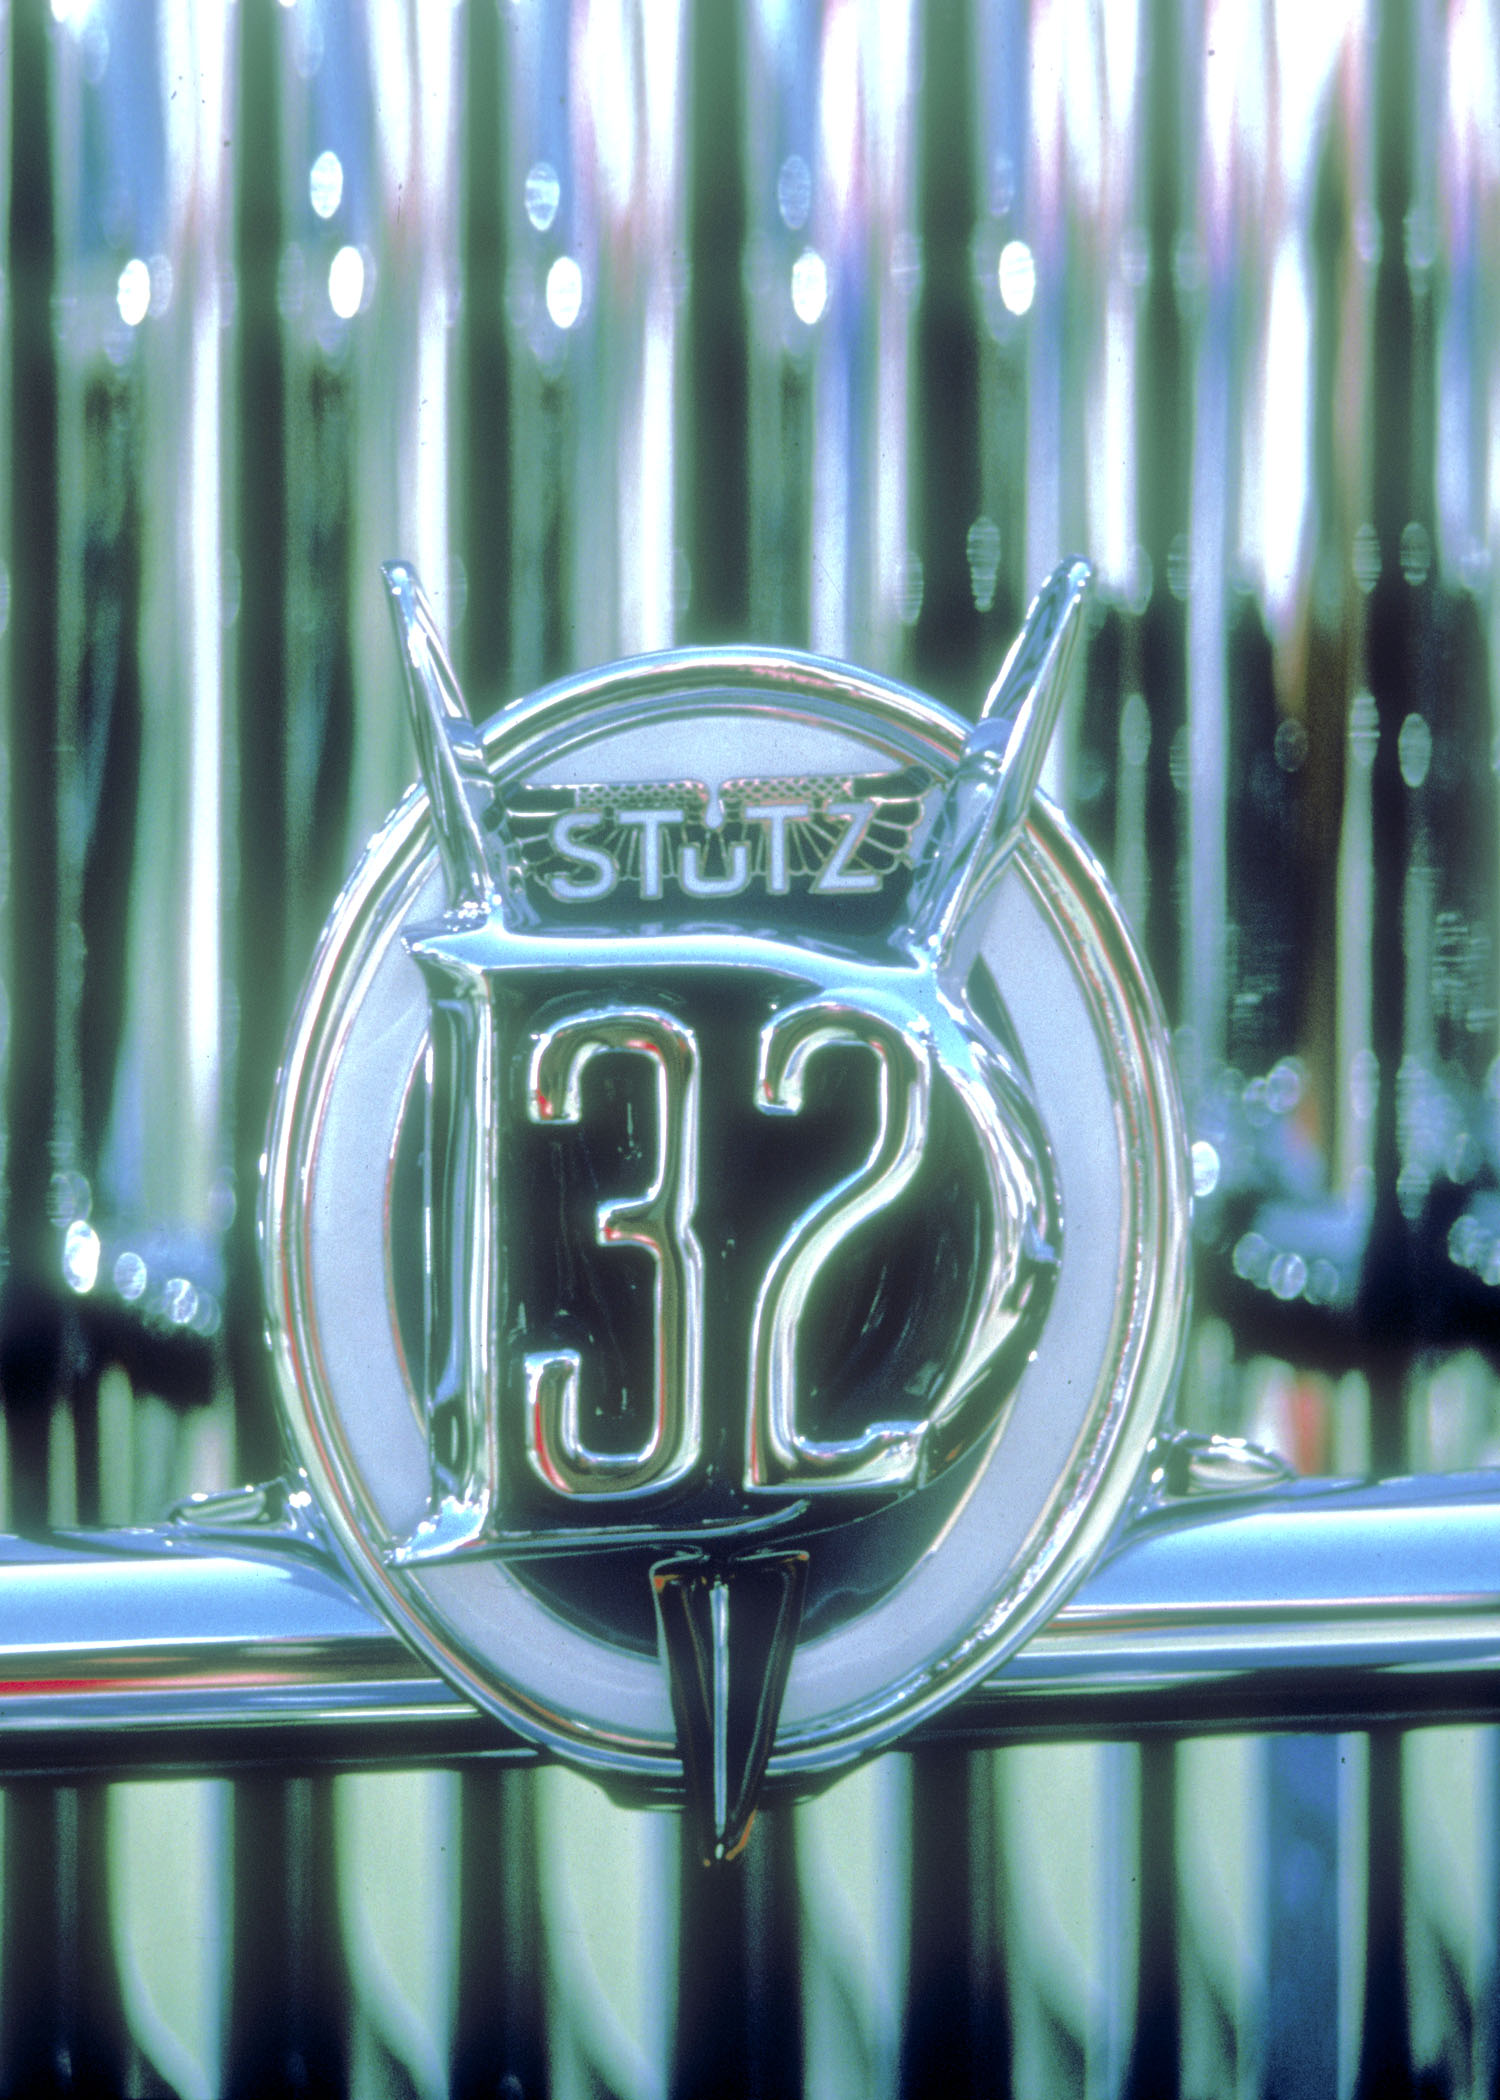 ss-cars-stutz_badge.jpg